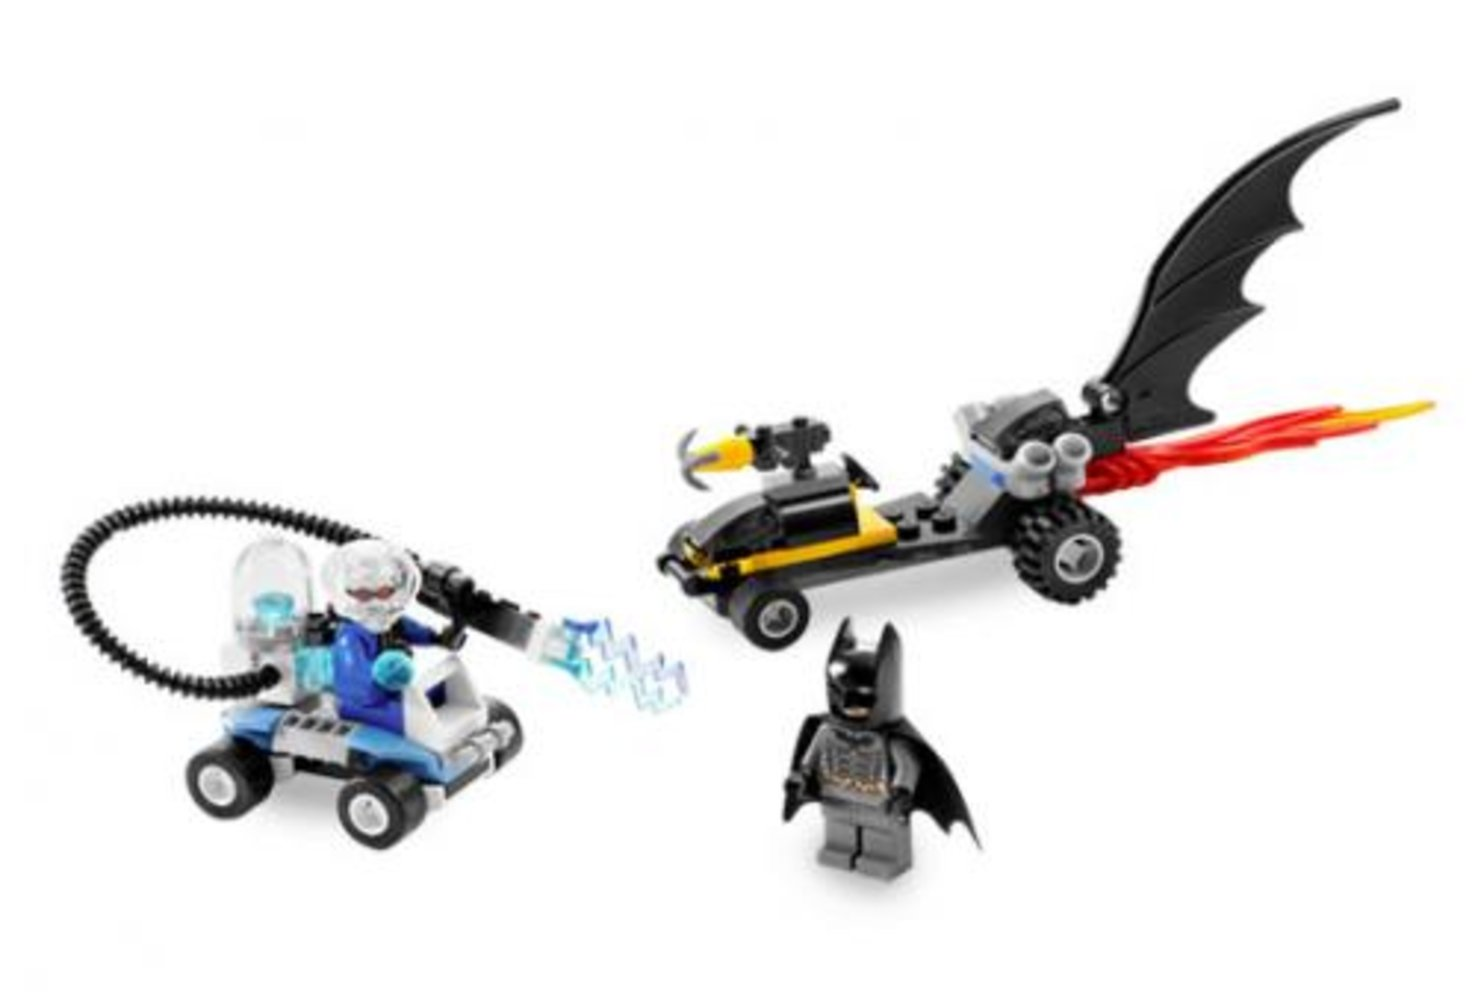 Batman's Buggy: The Escape of Mr. Freeze